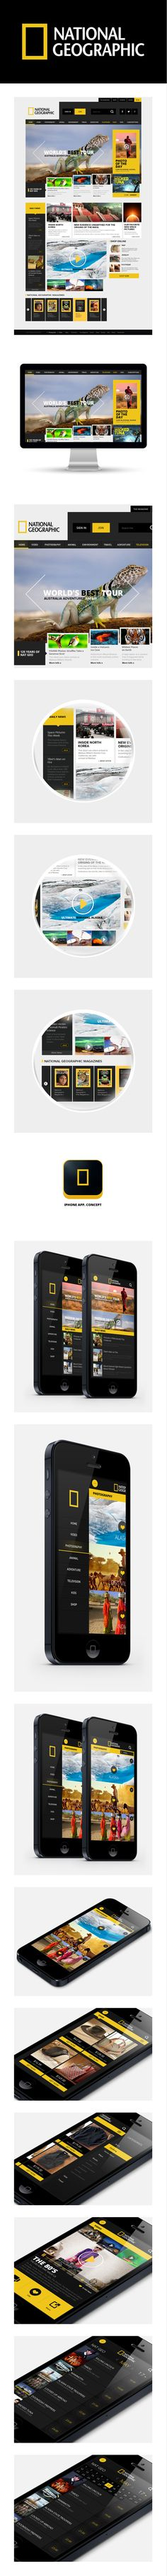 National Geographic re-design